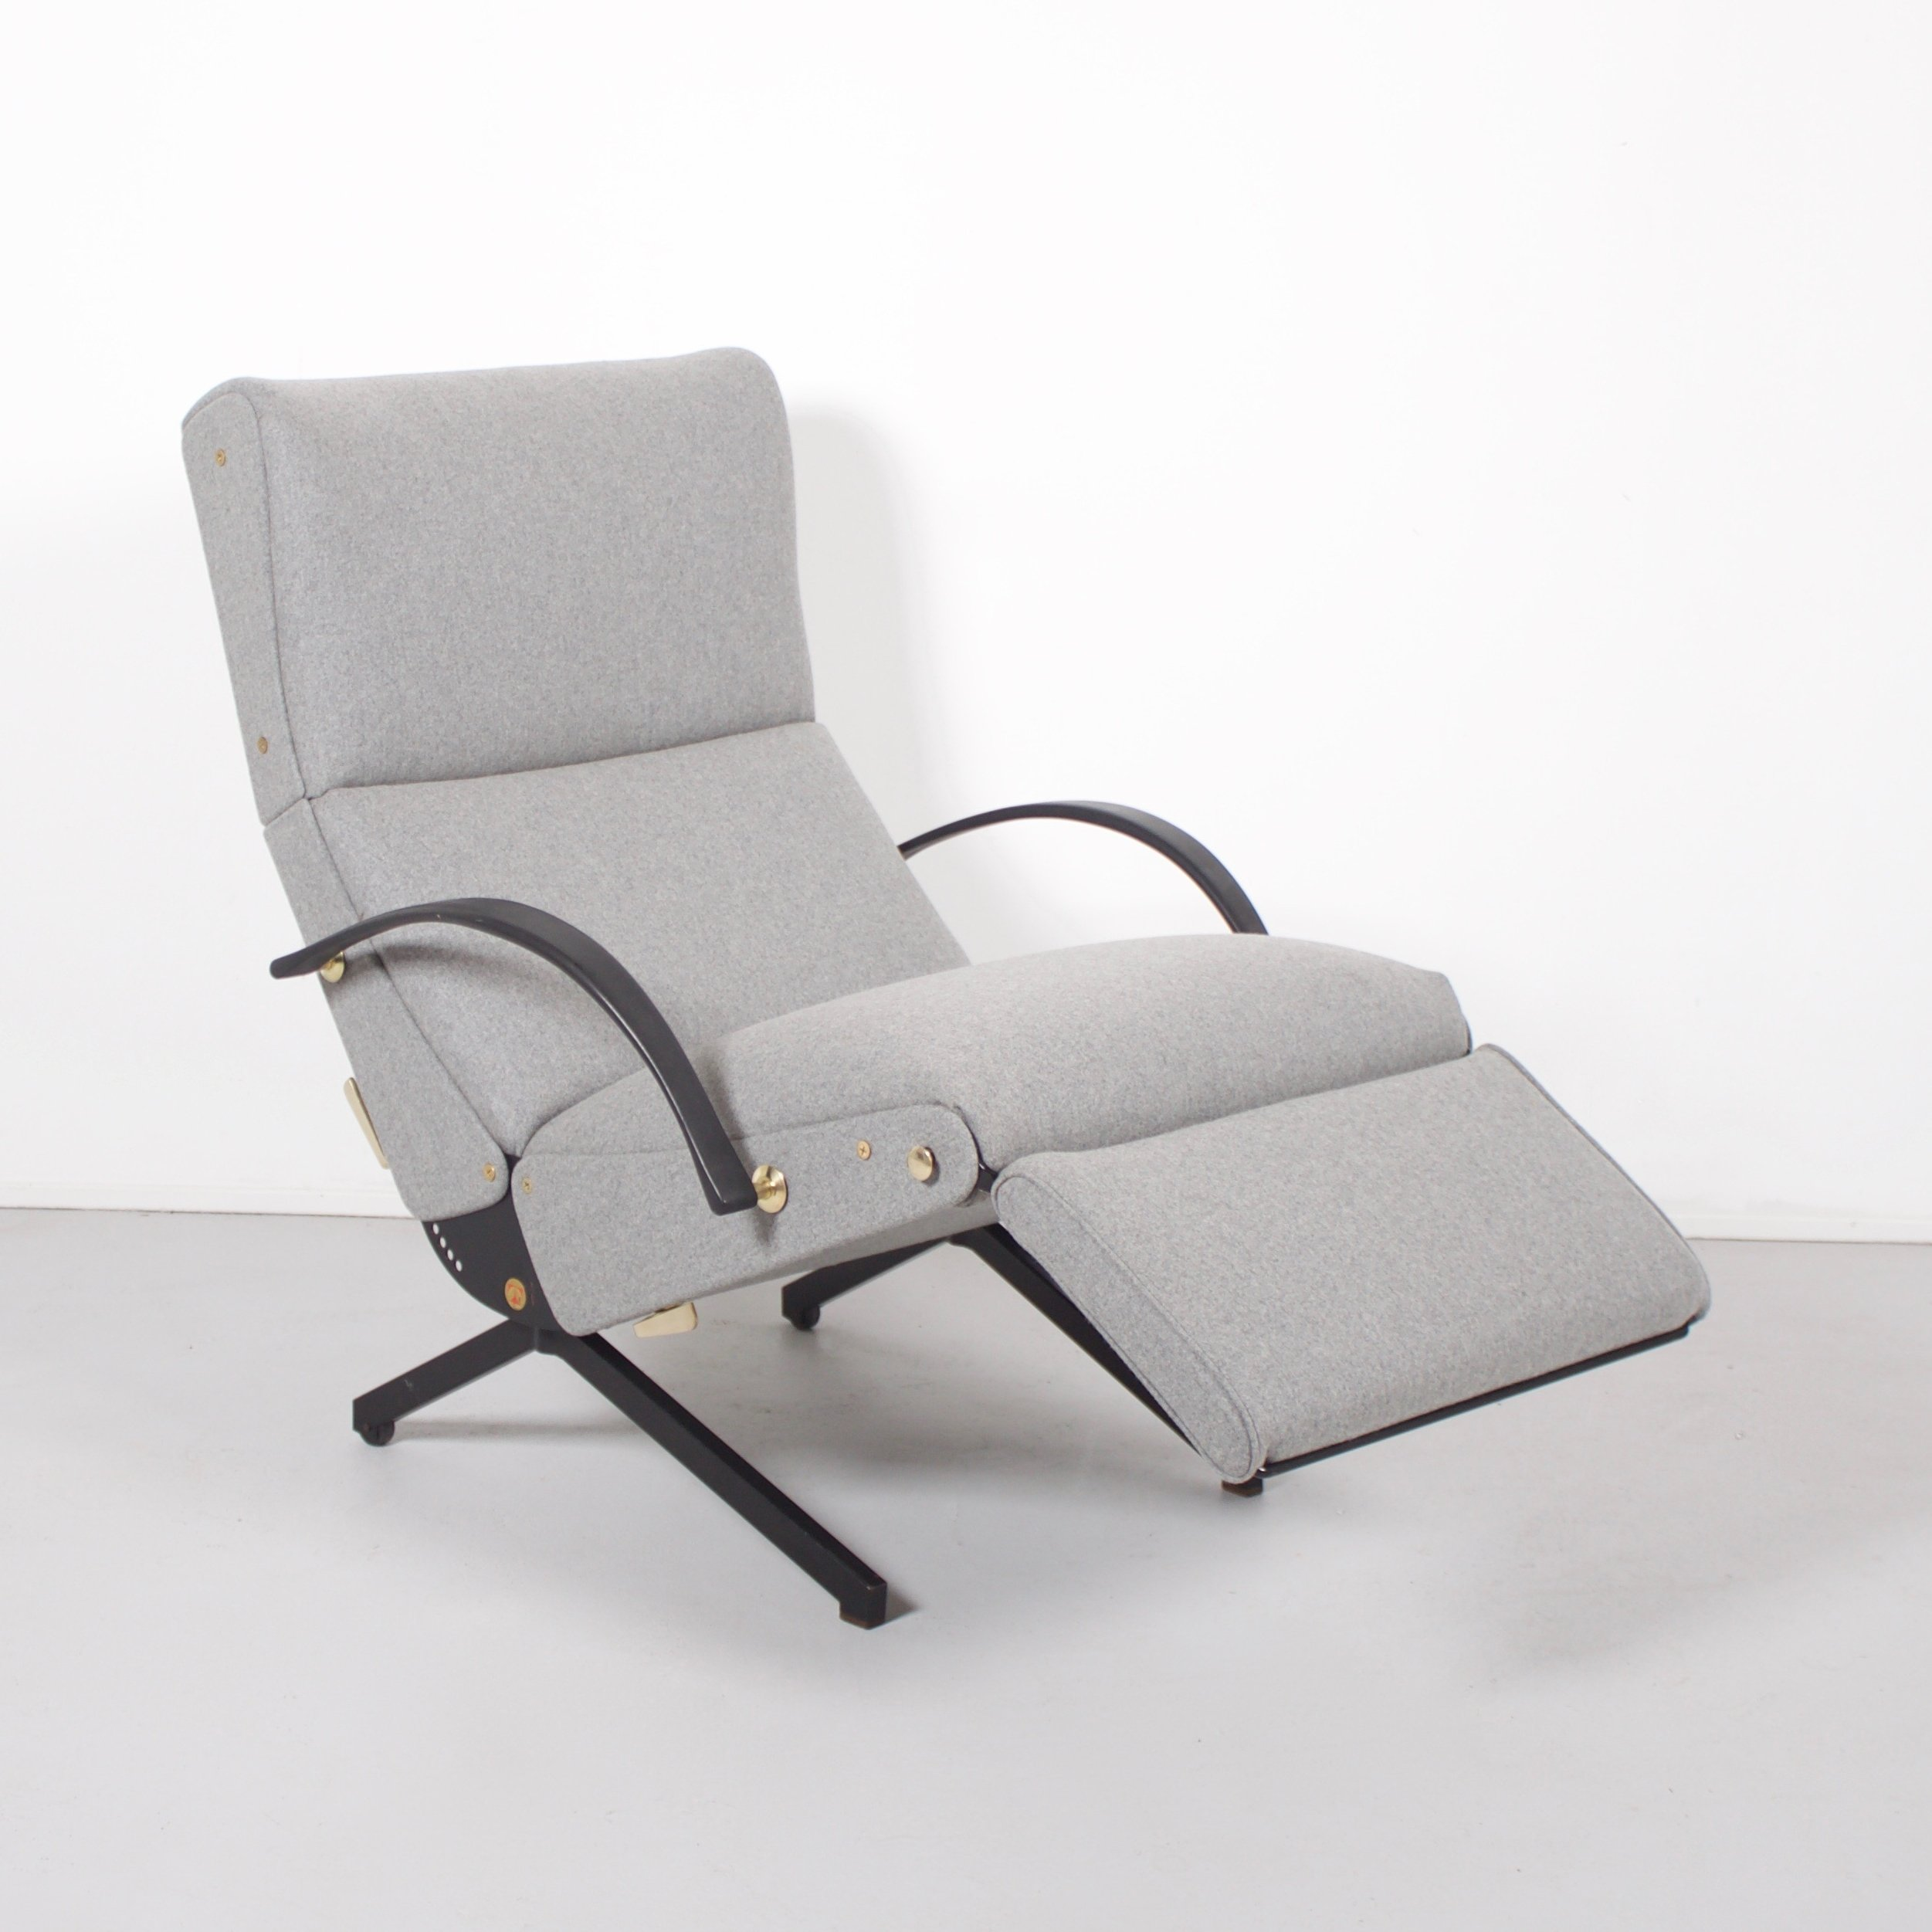 2 X P40 Lounge Chair By Osvaldo Borsani For Tecno 1960s